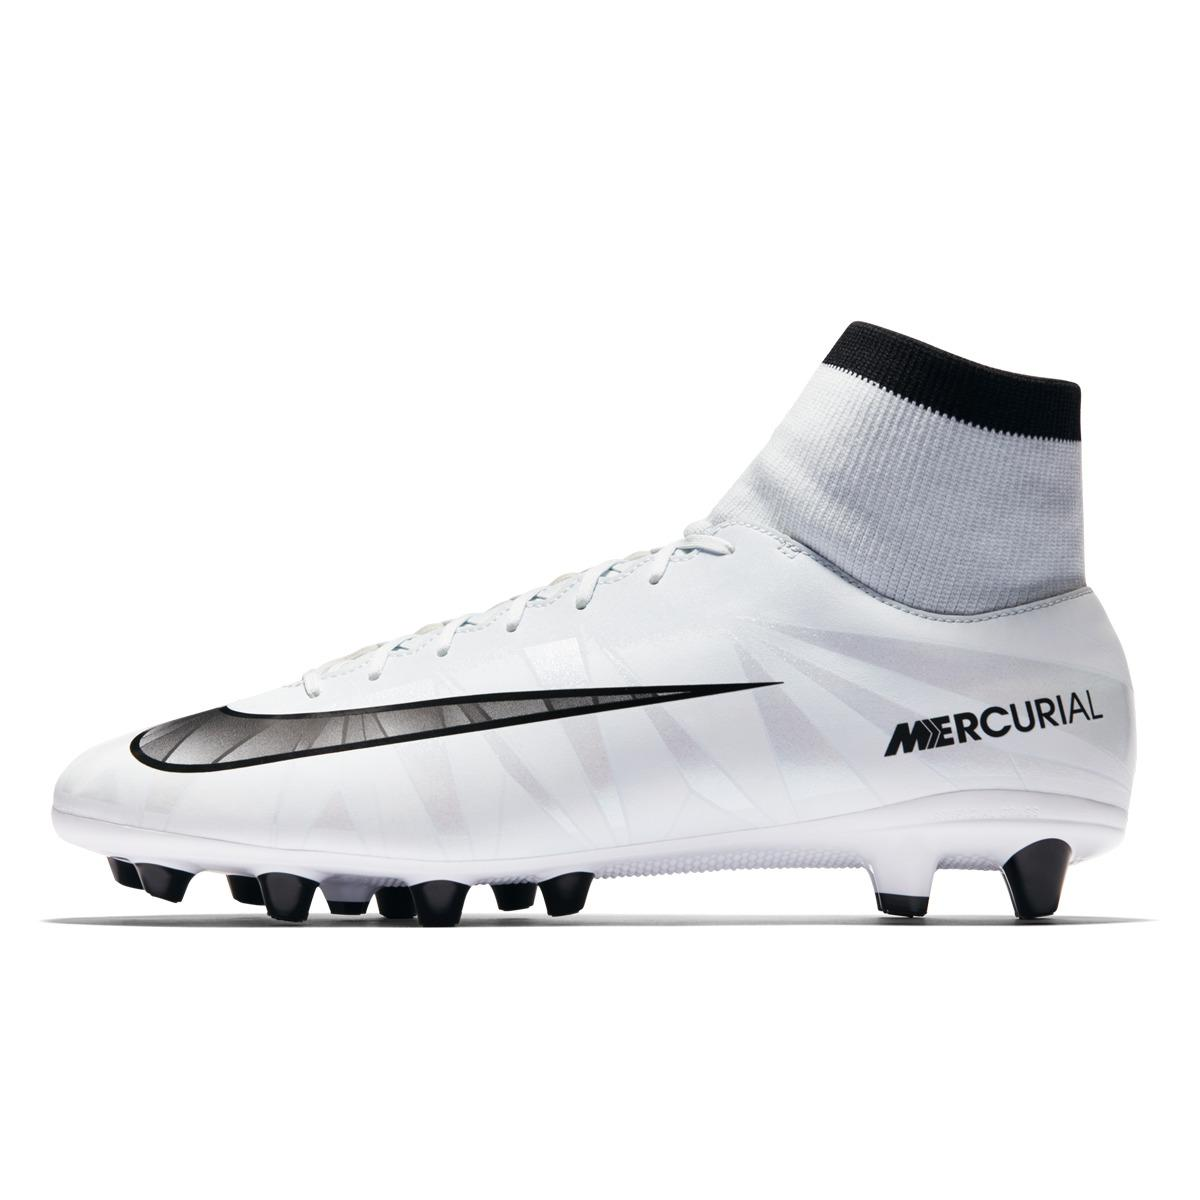 Mercurial Victory 6 Cr7 Df Agpro S Football Boots 903602 Soccer Cleats